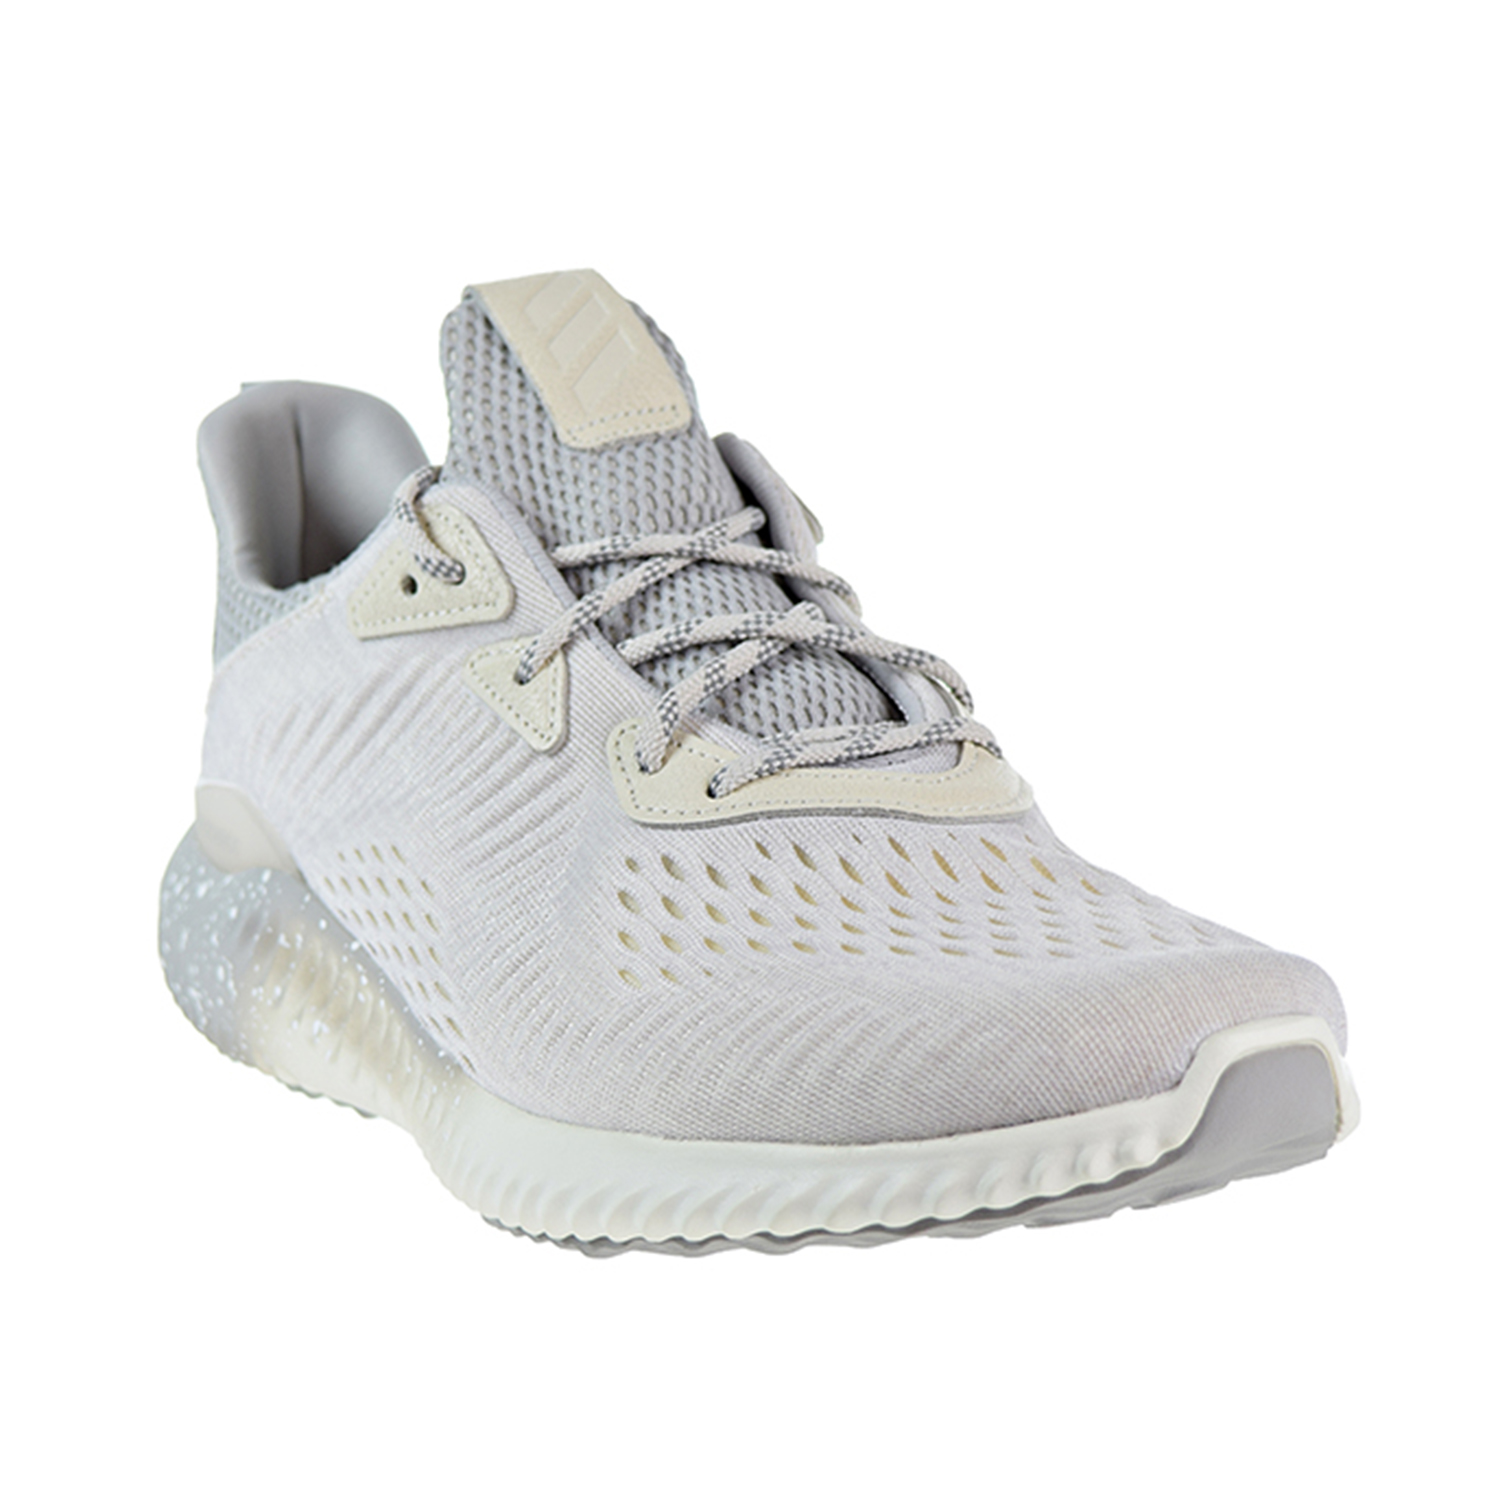 660026212ccd2 Adidas Alphabounce 1 Reigning Champ Mens Shoes Core White Footwear White  cg5328